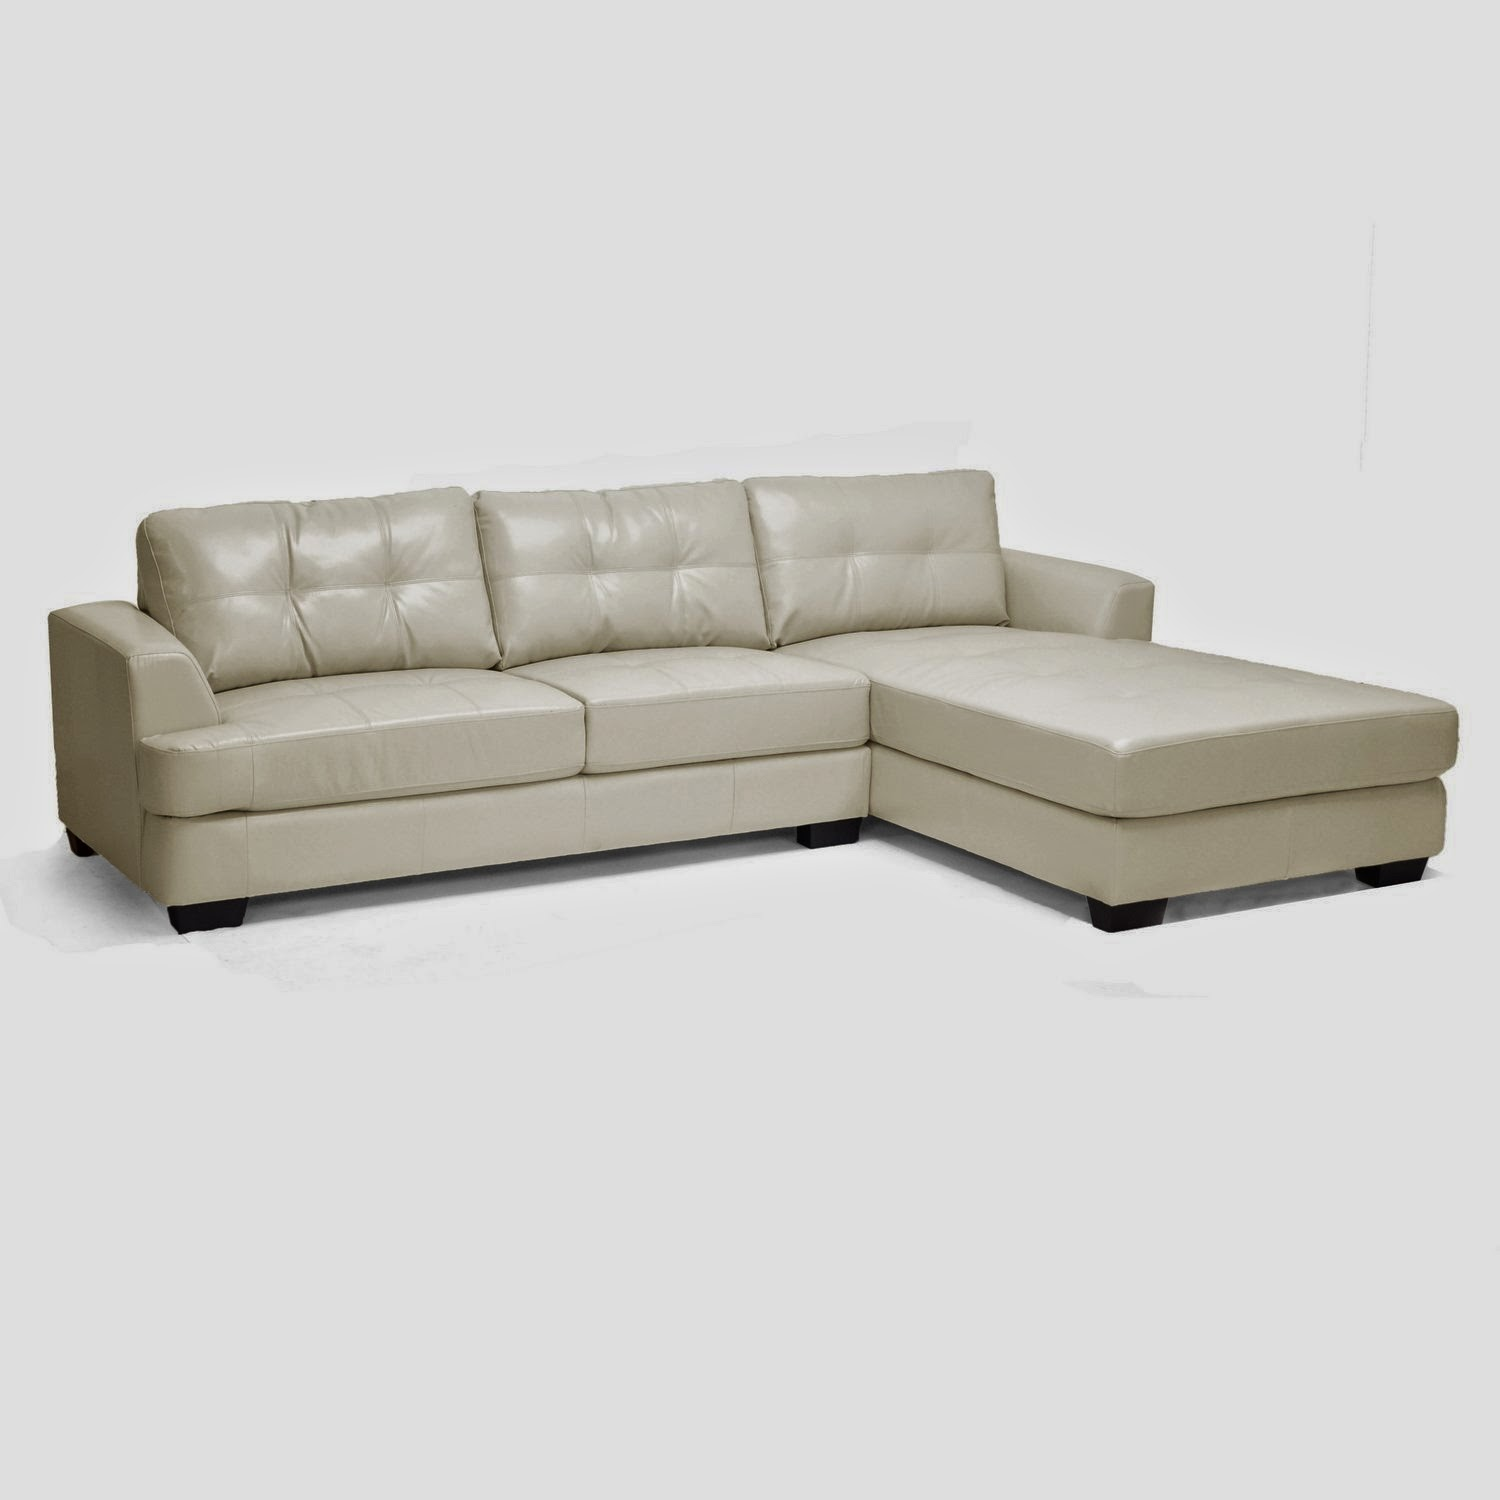 couch with chaise leather couch with chaise lounge ForChaise Lounge Couch